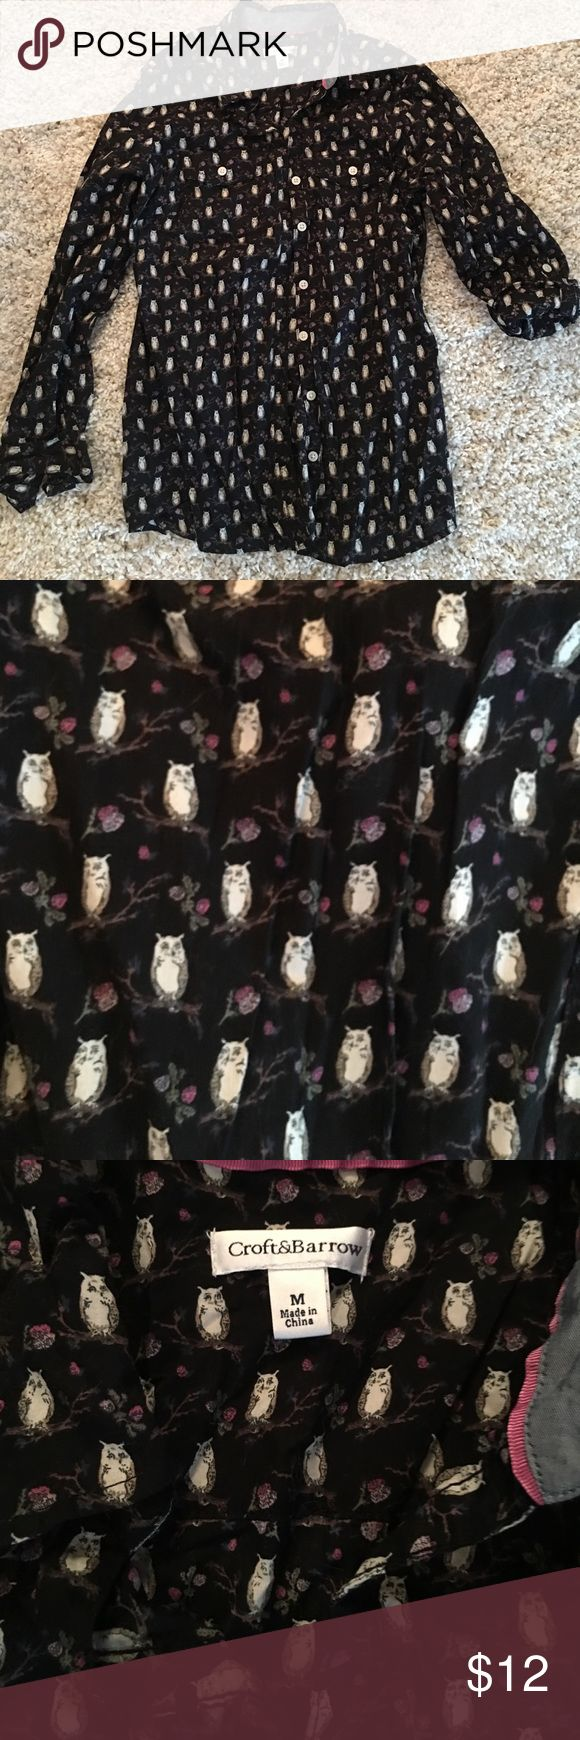 Button Down Owl Shirt So cute! Owl print on black background. Excellent condition. Worn once croft & barrow Tops Button Down Shirts